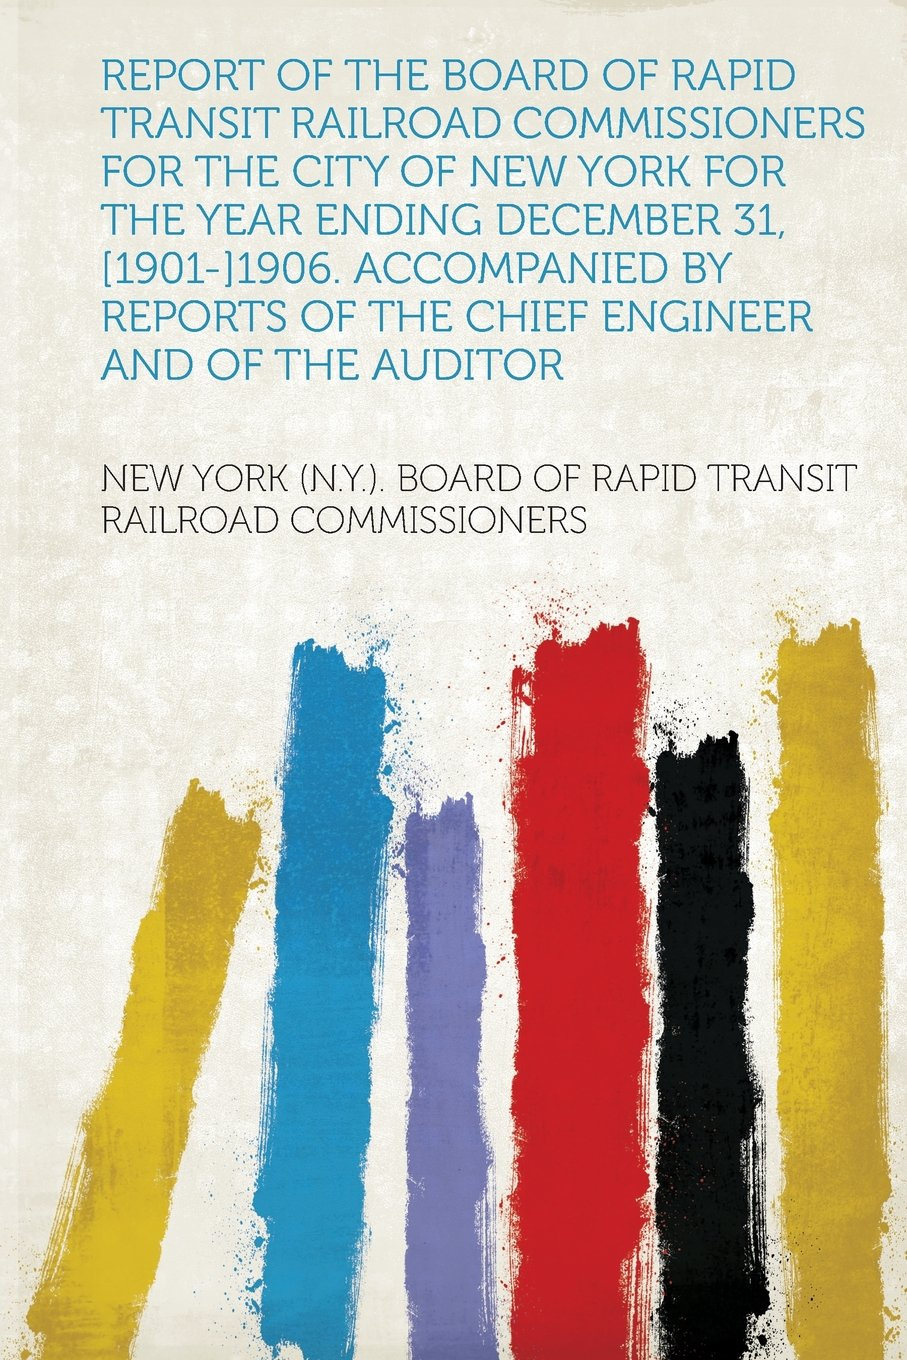 Download Report of the Board of Rapid Transit Railroad Commissioners for the City of New York for the Year Ending December 31, [1901-] 1906. Accompanied by Reports of the Chief Engineer and of the Auditor pdf epub